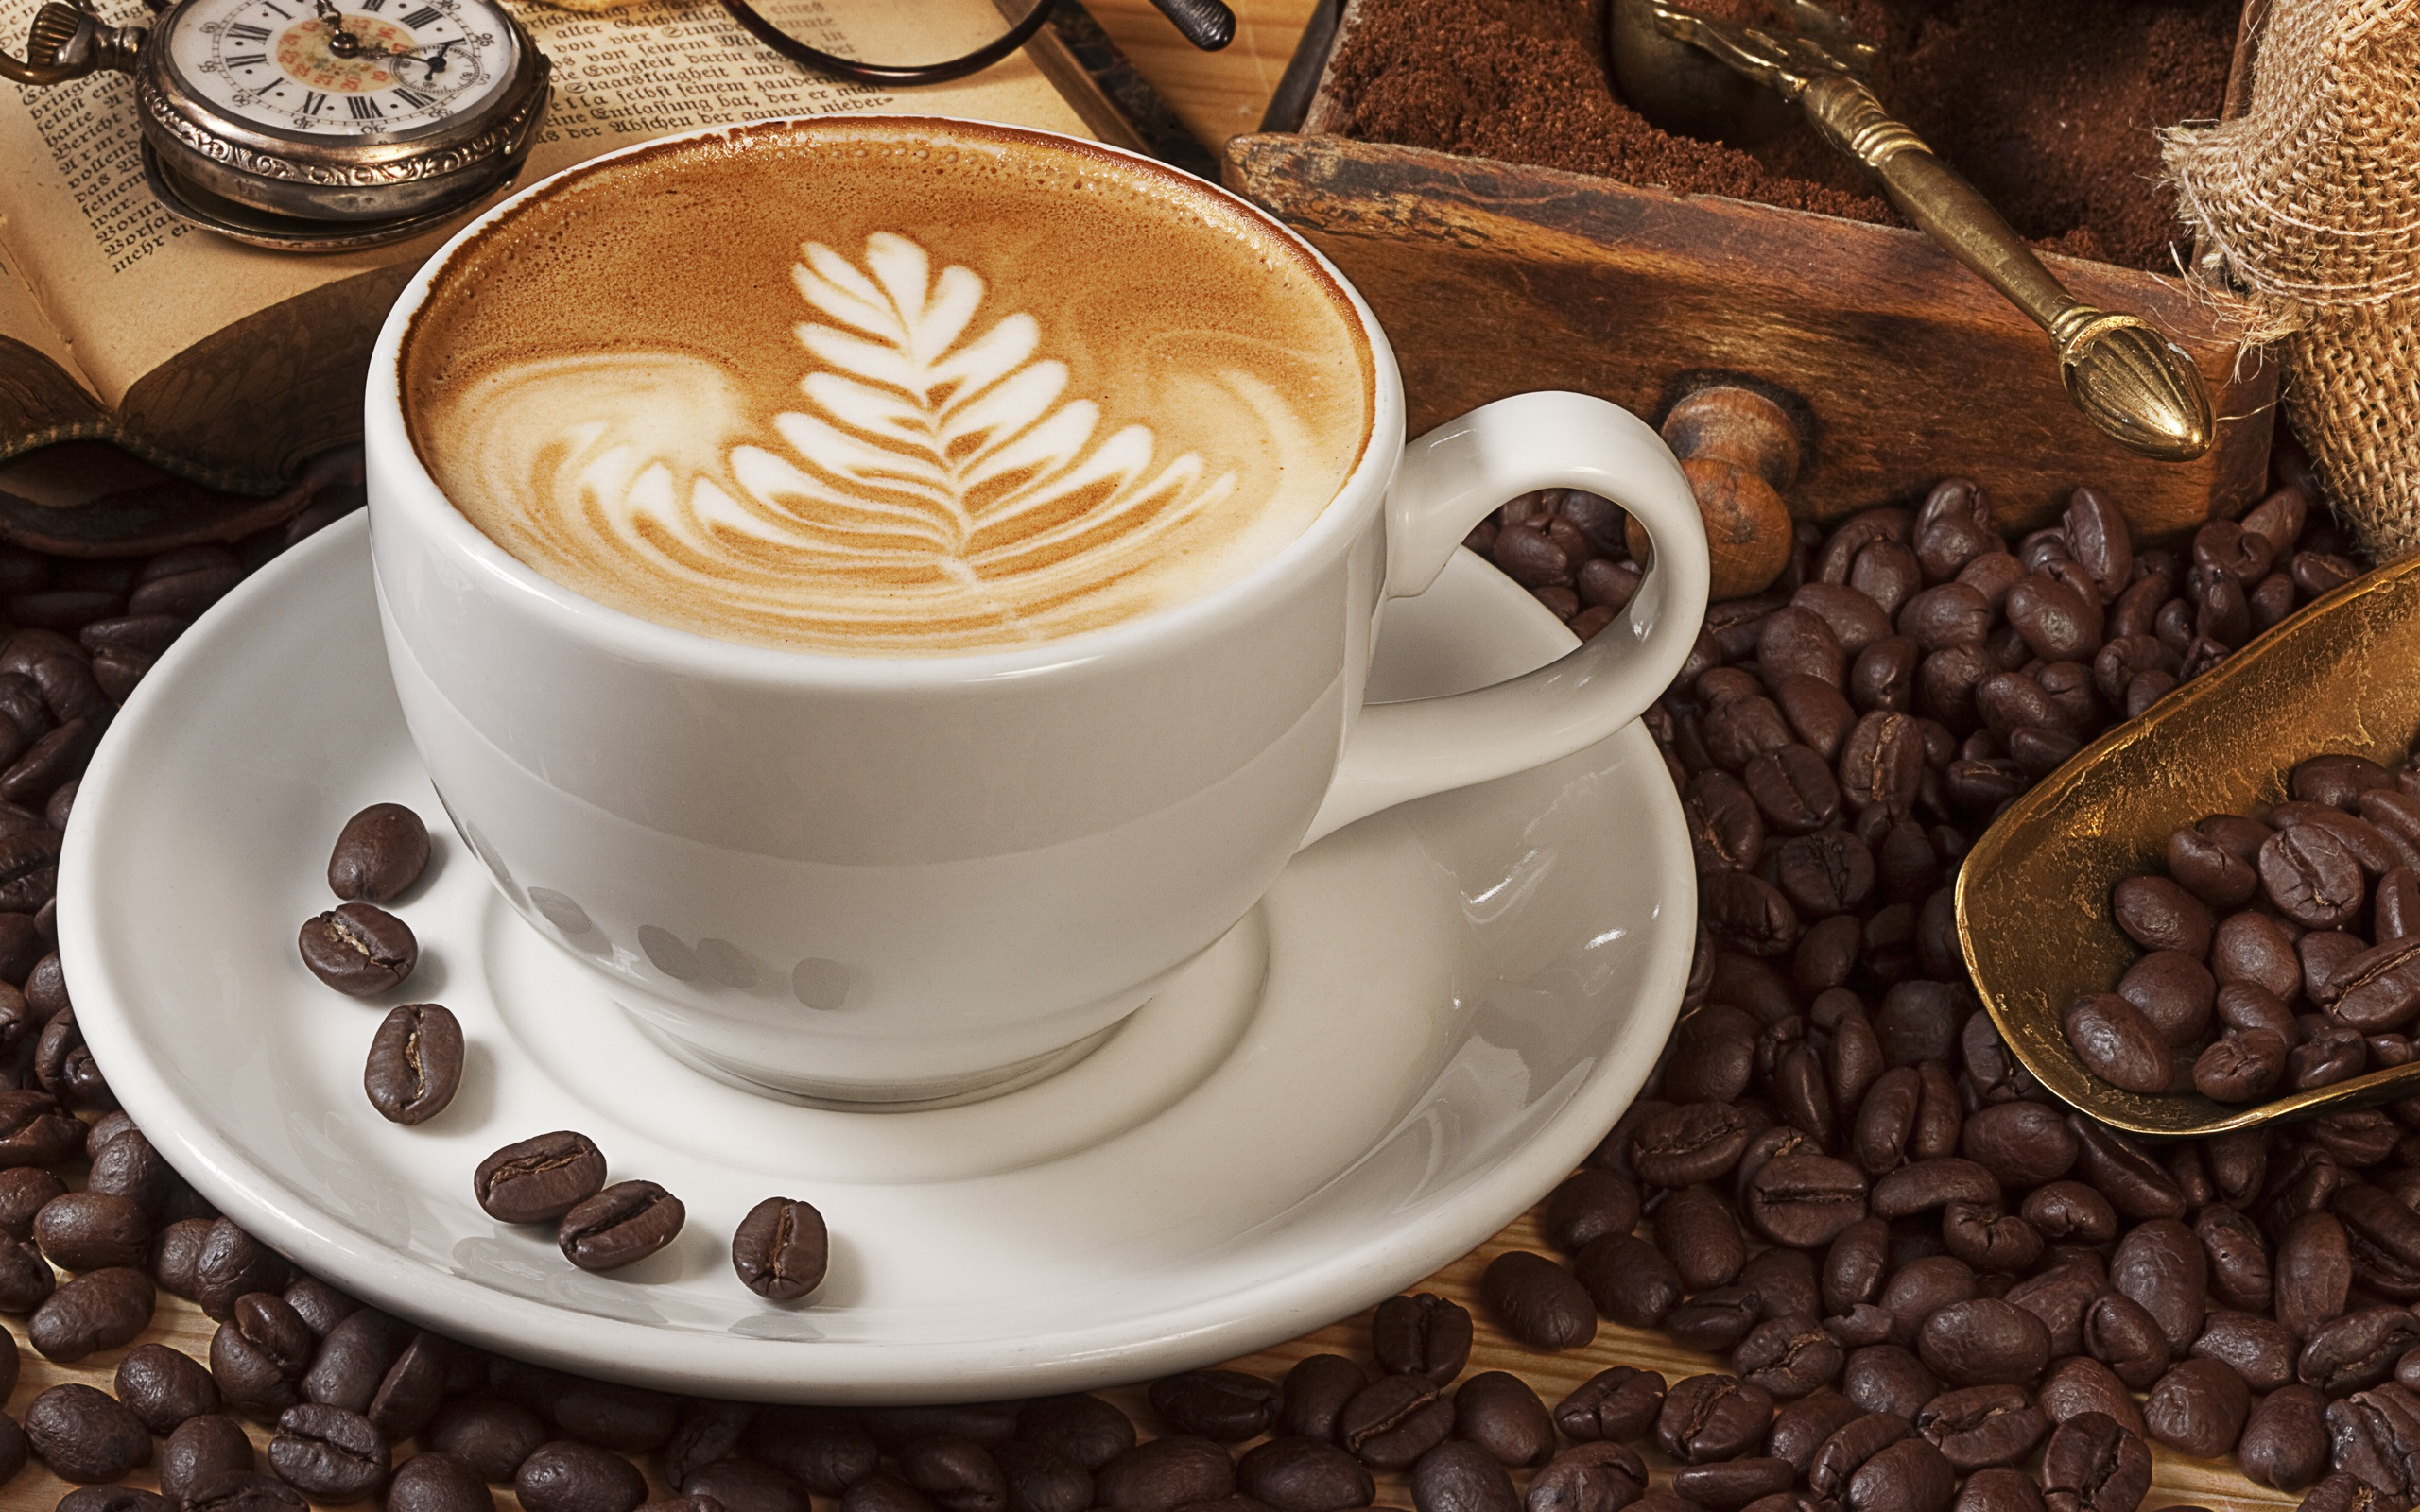 specialty coffee cappuccino latte hot chocolate mocha specialty coffee cappuccino latte hot chocolate mocha The One Elm